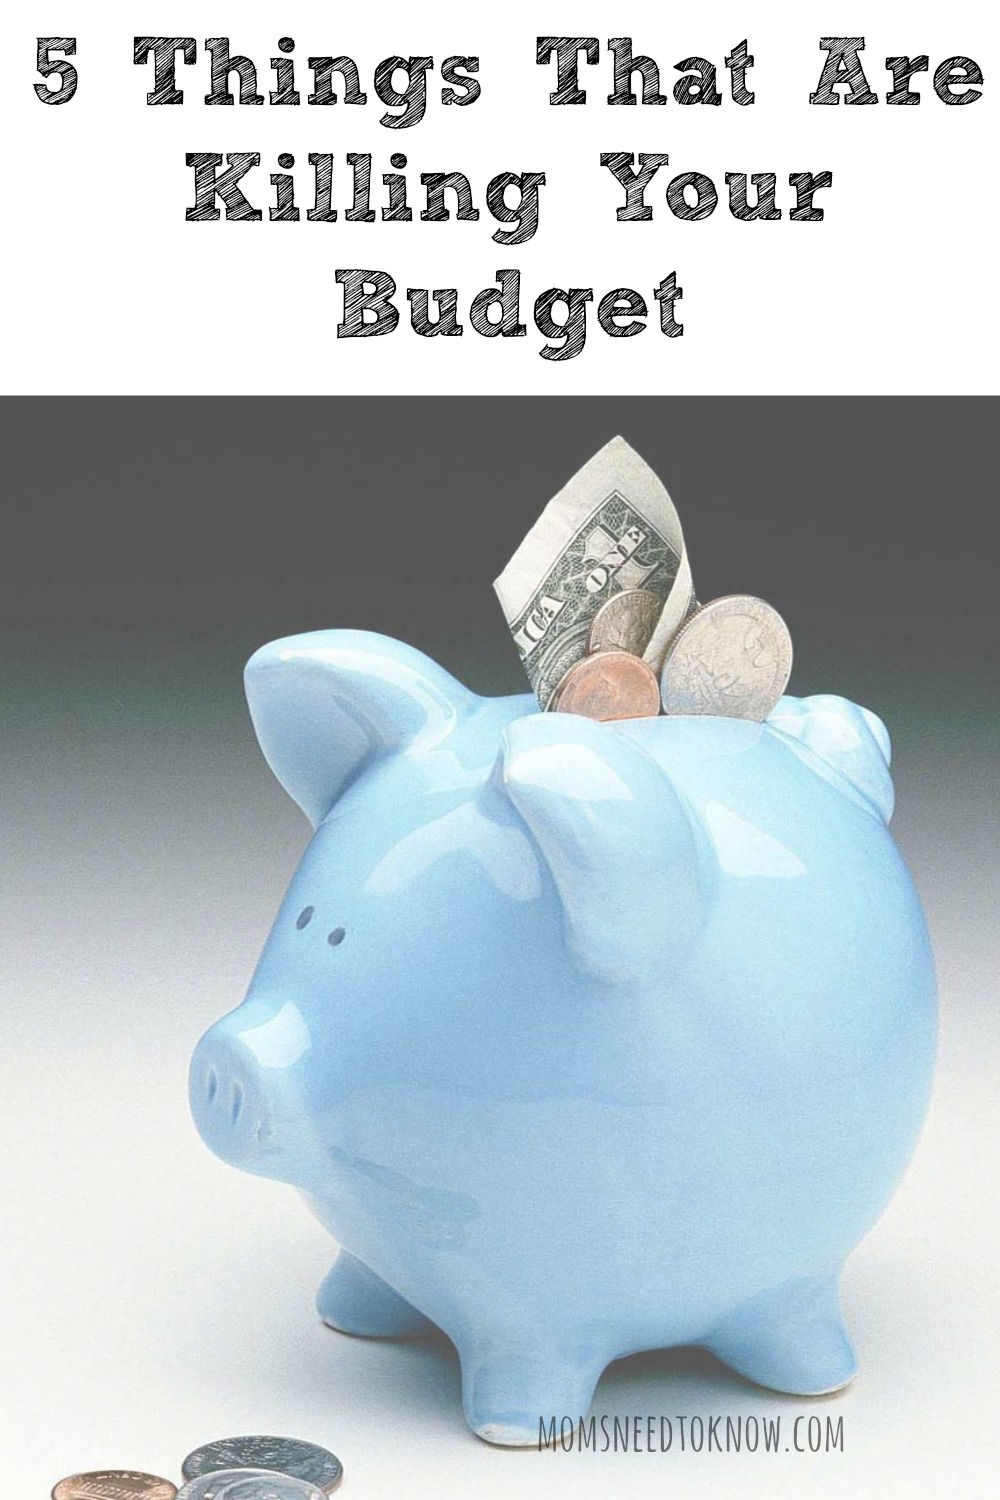 5 Things That Are Killing Your Budget